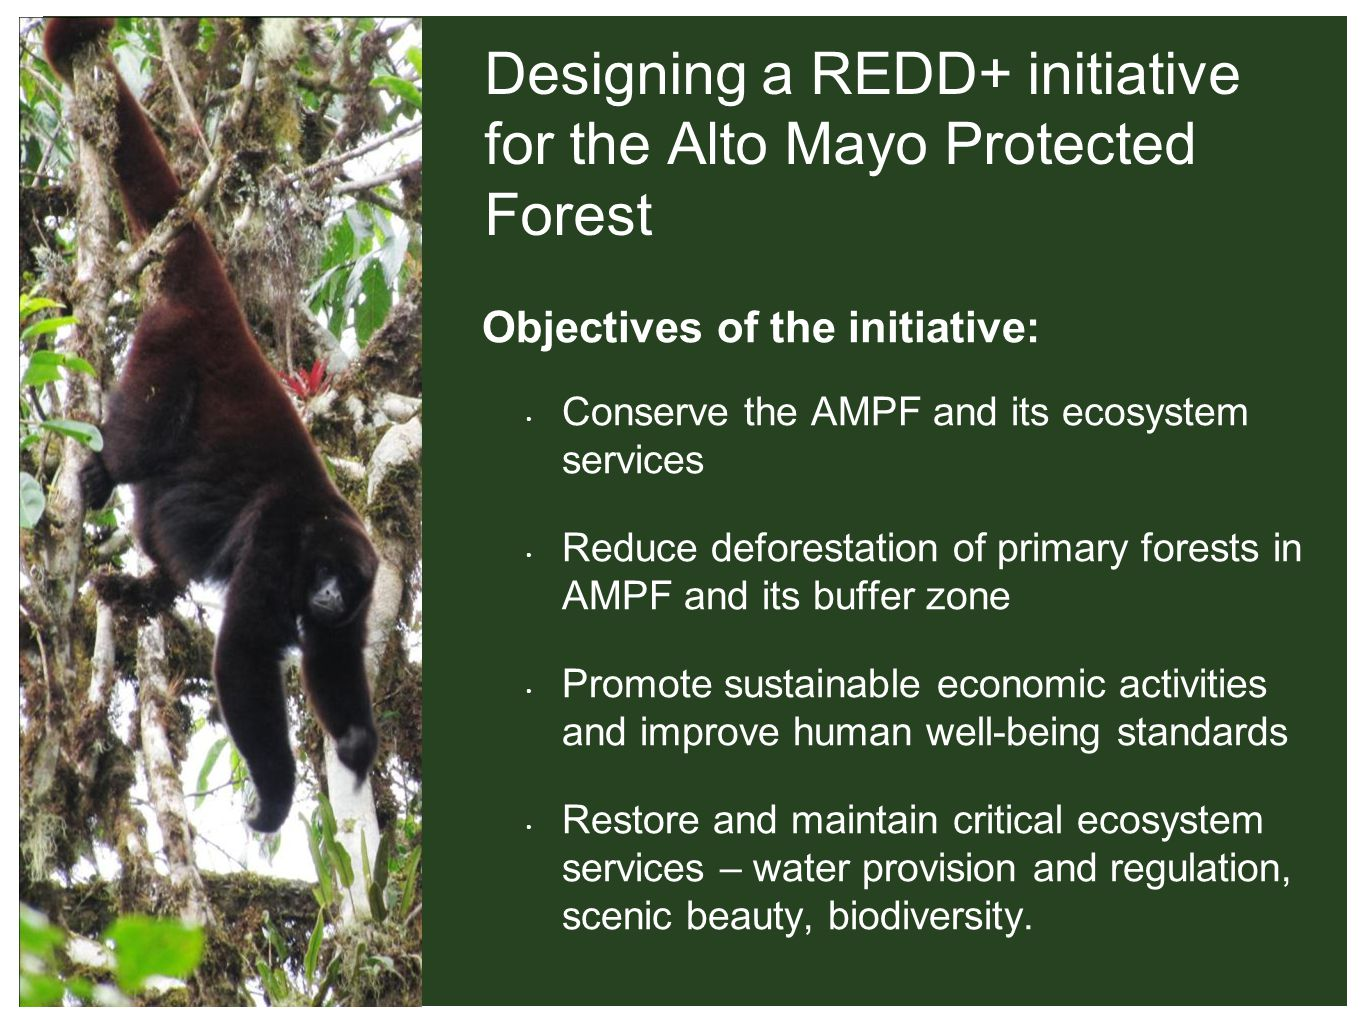 Designing a REDD+ initiative for the Alto Mayo Protected Forest Objectives of the initiative: Conserve the AMPF and its ecosystem services Reduce deforestation of primary forests in AMPF and its buffer zone Promote sustainable economic activities and improve human well-being standards Restore and maintain critical ecosystem services – water provision and regulation, scenic beauty, biodiversity.